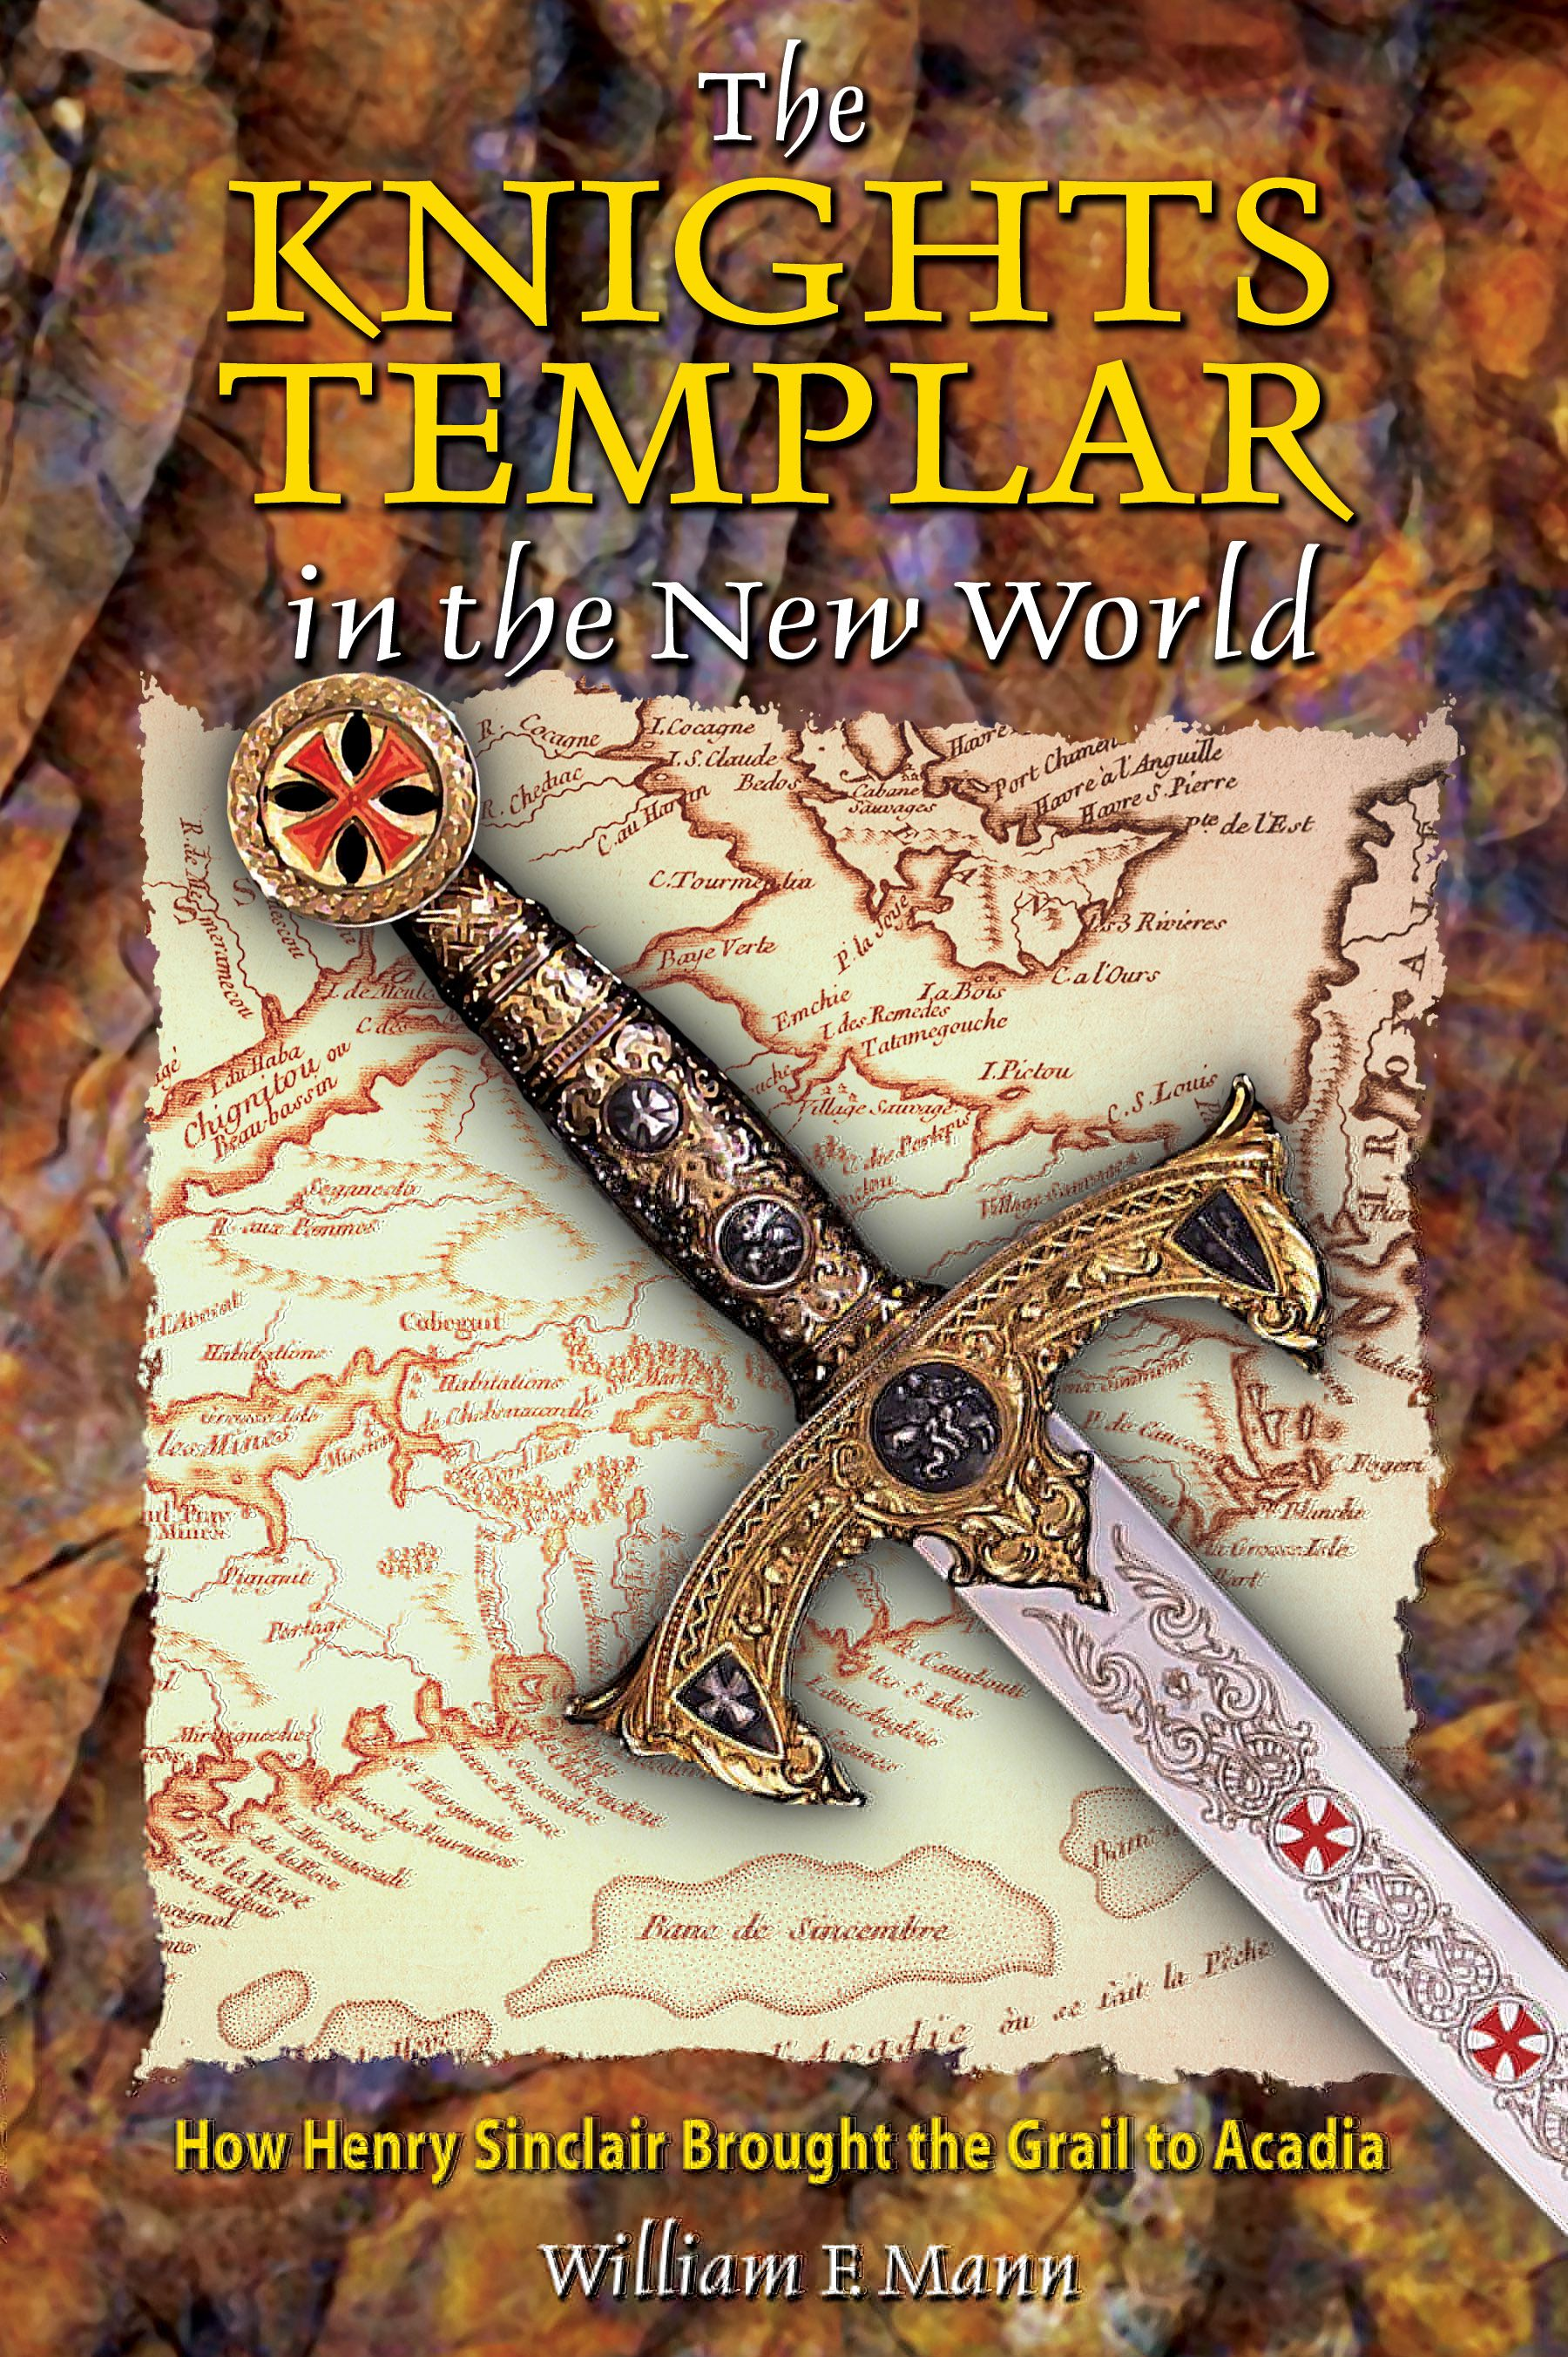 The-knights-templar-in-the-new-world-9780892811854_hr